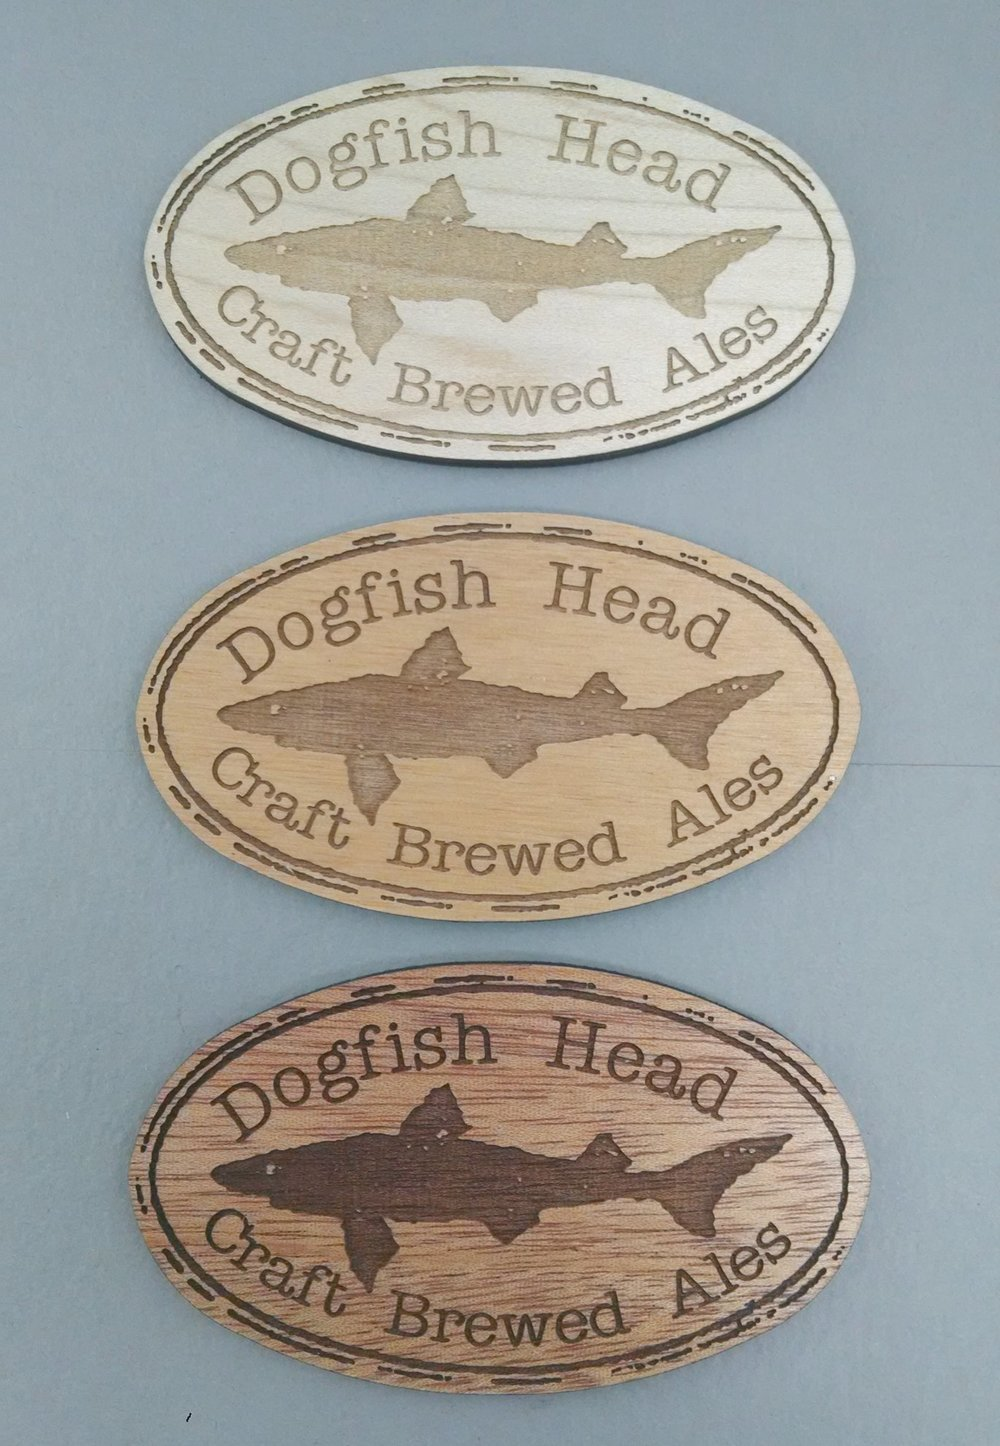 Dogfish Magnets.jpg